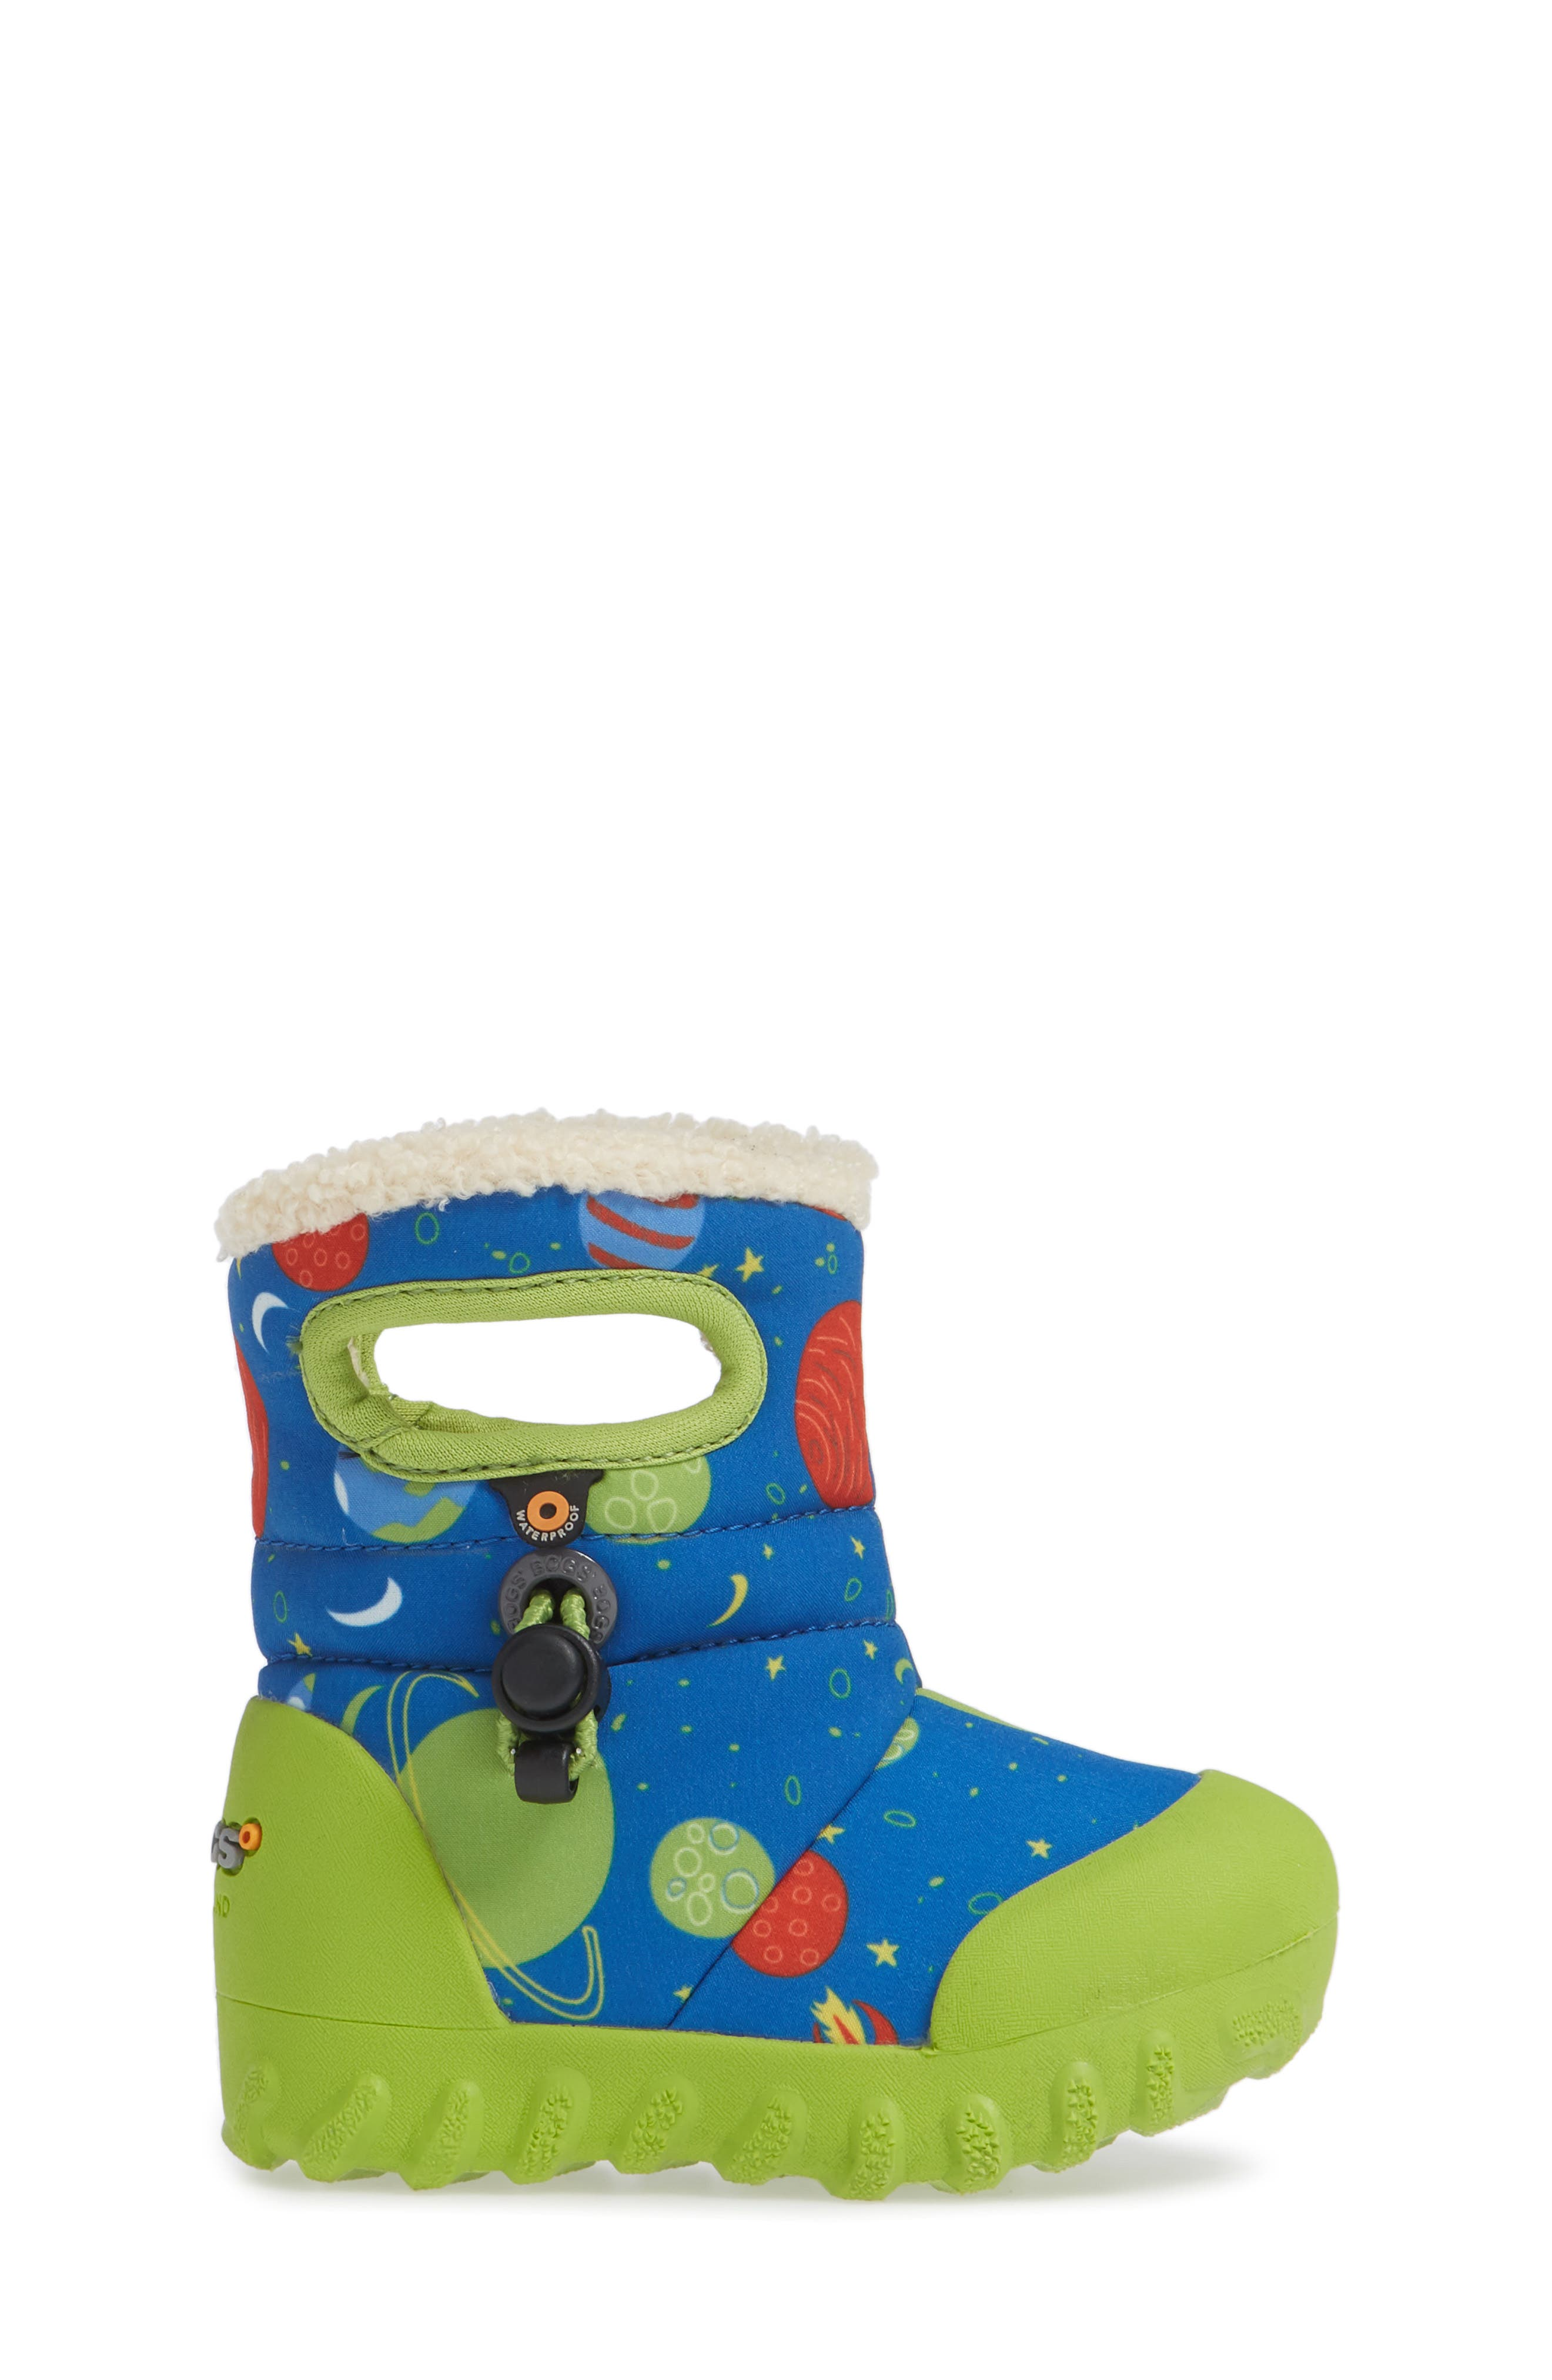 BOGS, B-MOC Space Waterproof Insulated Faux Fur Boot, Alternate thumbnail 3, color, BLUE MULTI